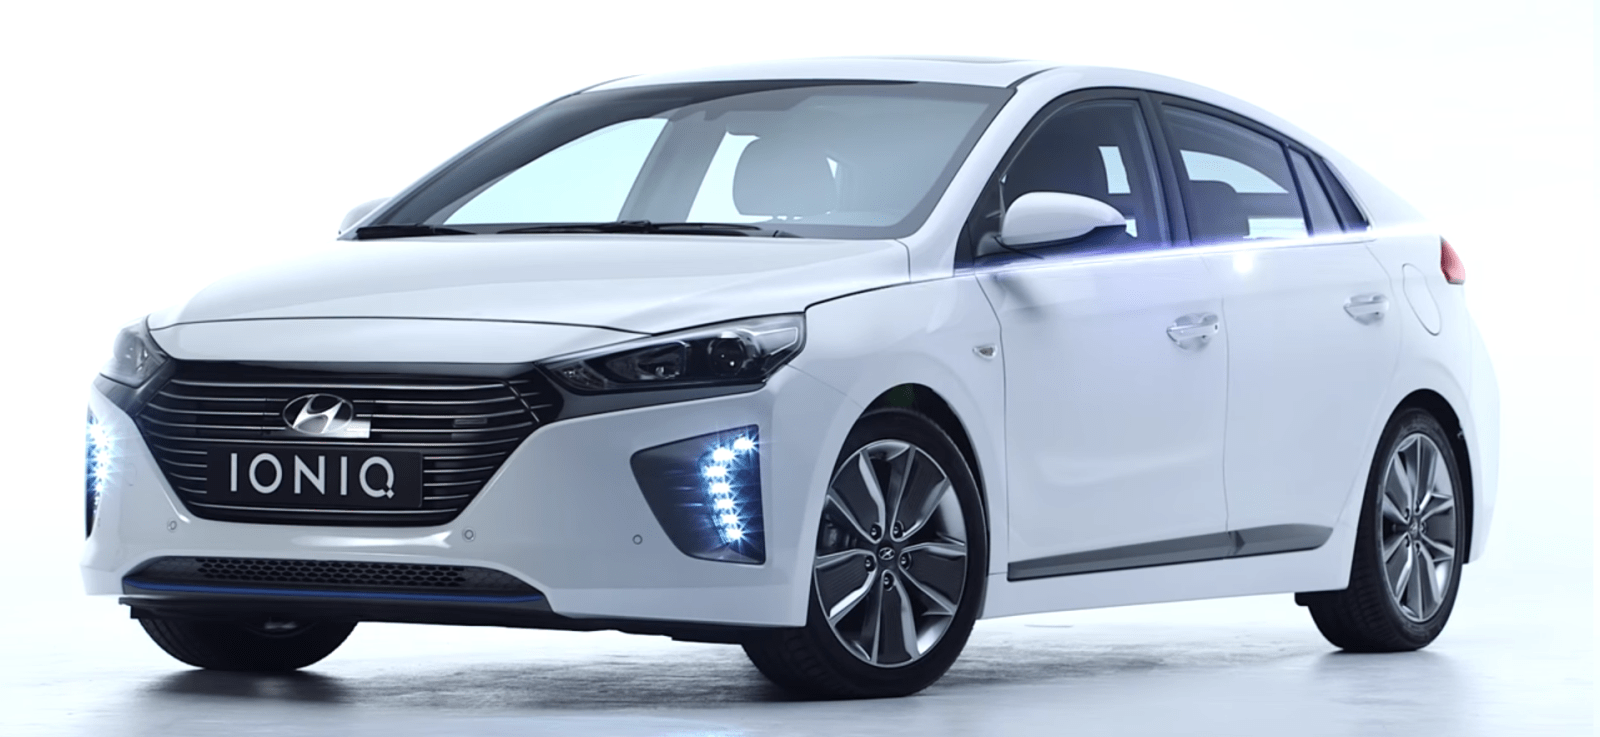 hyundai unveils the design of the ioniq and details of the hybrid version gallery video. Black Bedroom Furniture Sets. Home Design Ideas